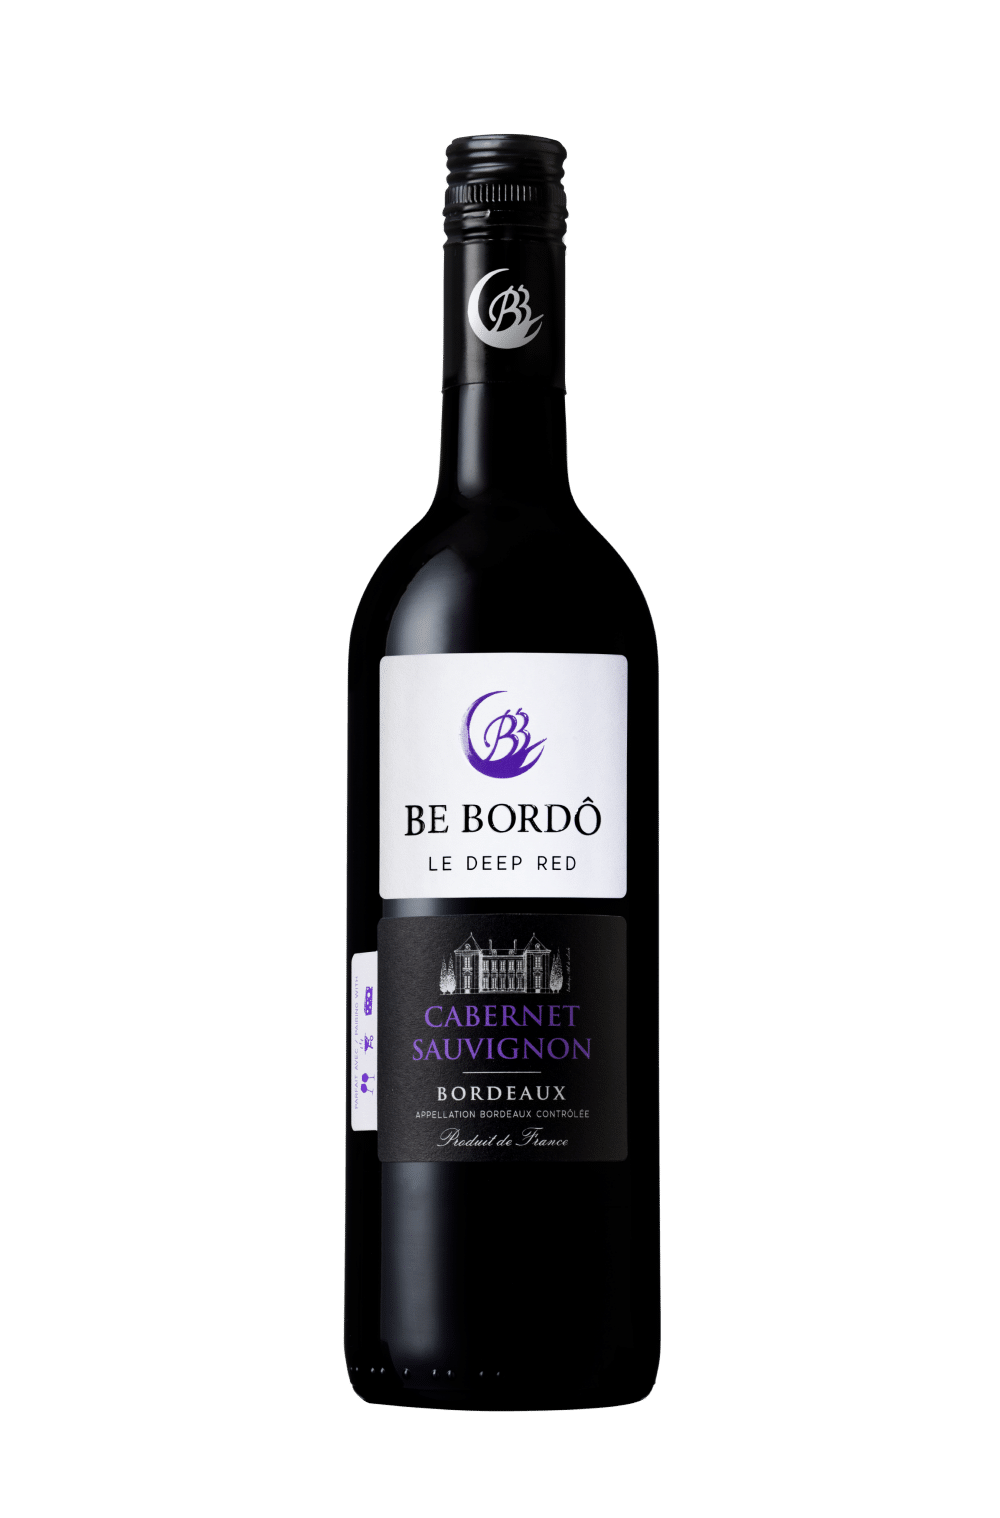 Be Bordô cabernet screwcap